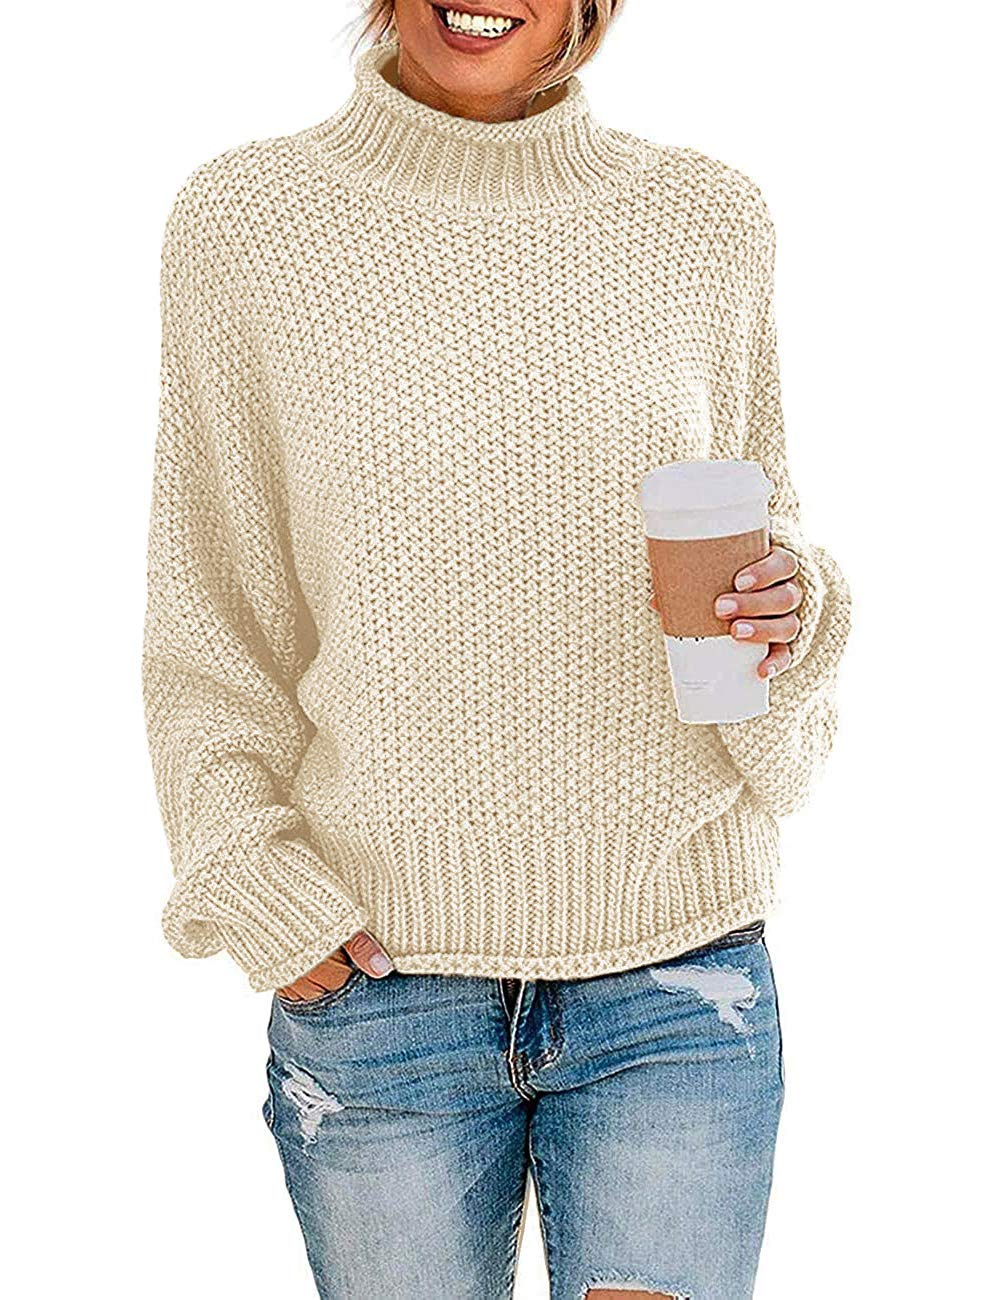 Women's Turtleneck Batwing Sleeve Loose Oversized Chunky Knitted Pullover Sweater Jumper Tops